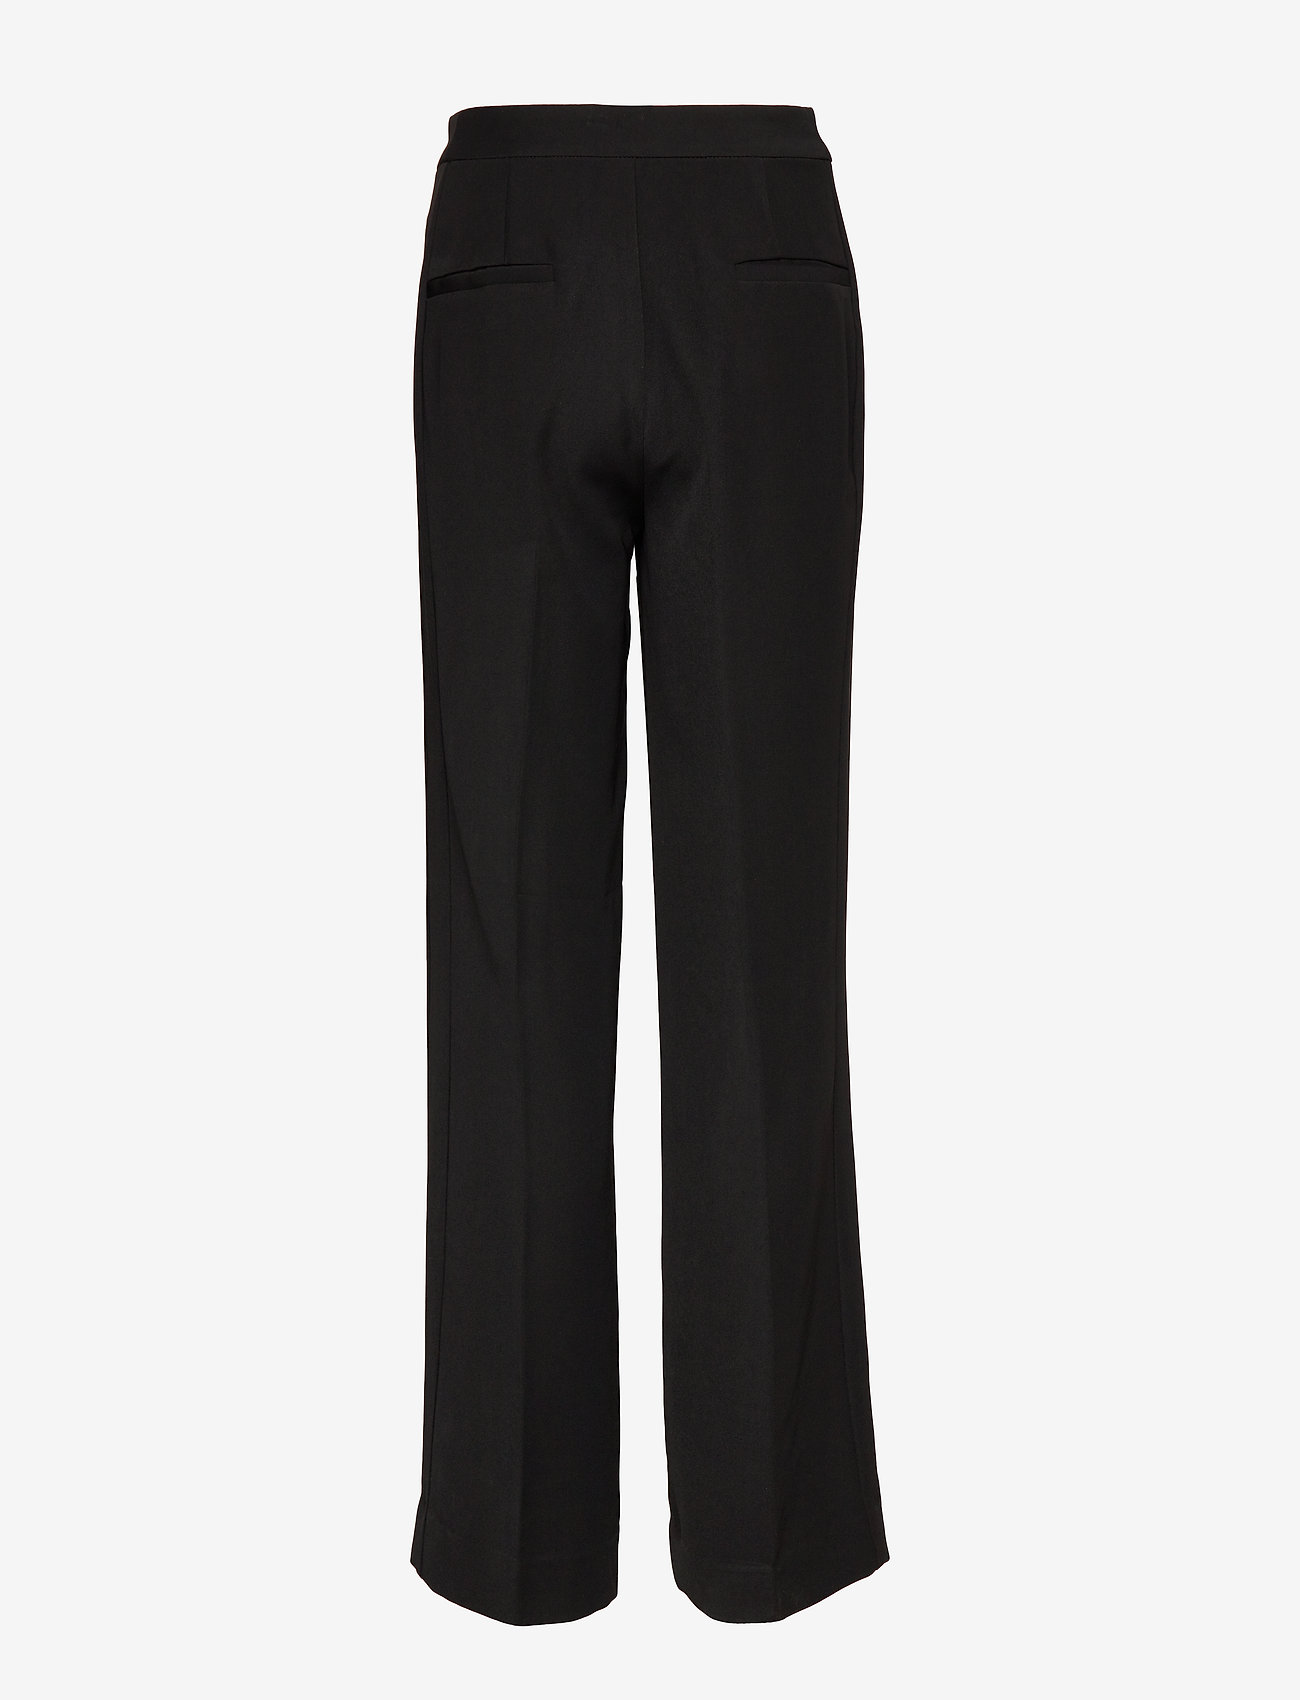 Unique Trouser (Black) (1851.85 kr) - Camilla Pihl